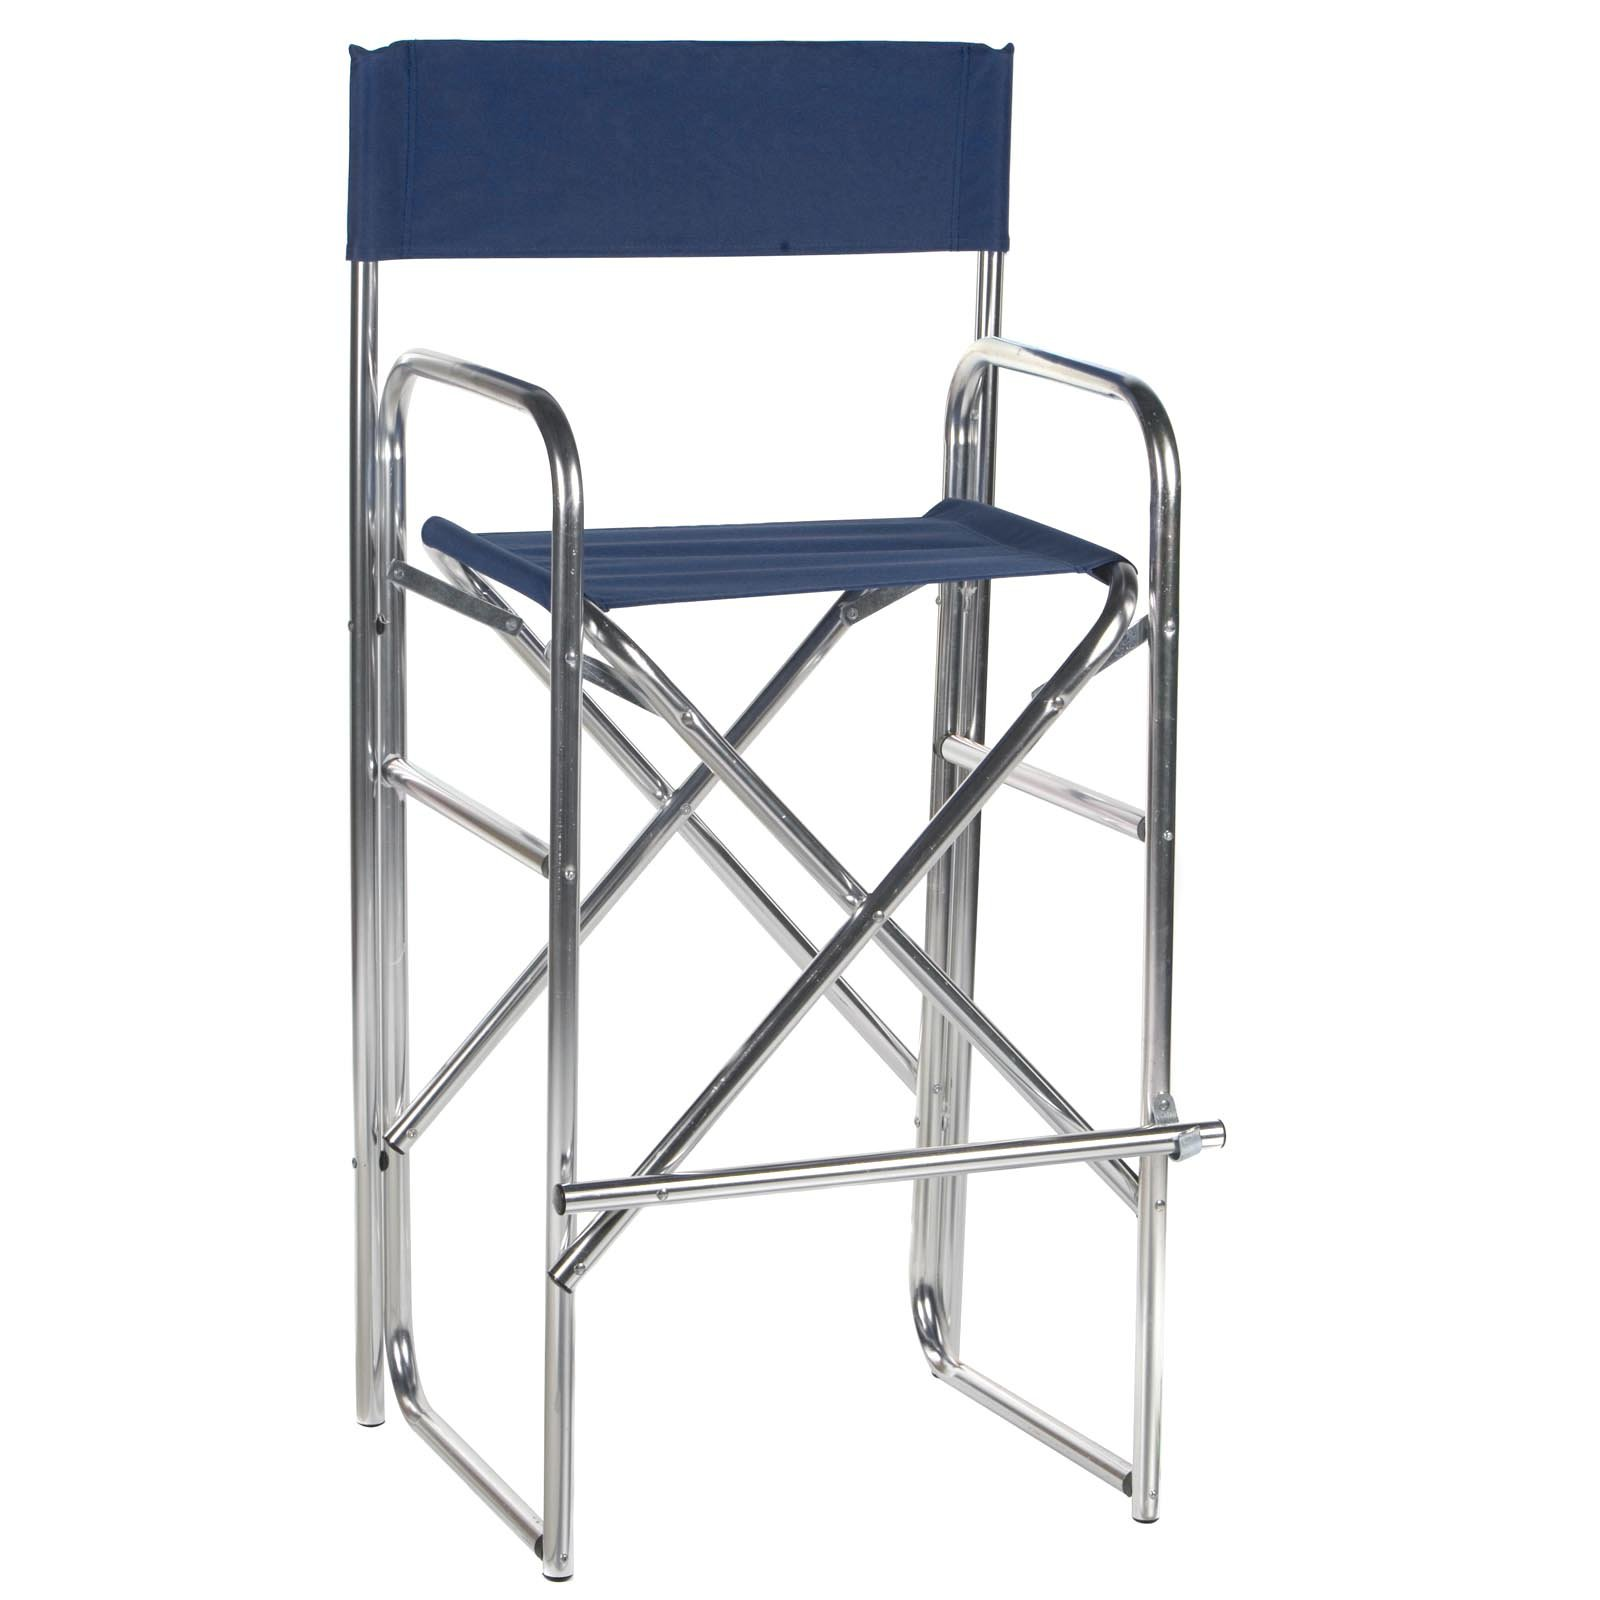 height bar walmart inch ip com frame chair aluminum tall directors